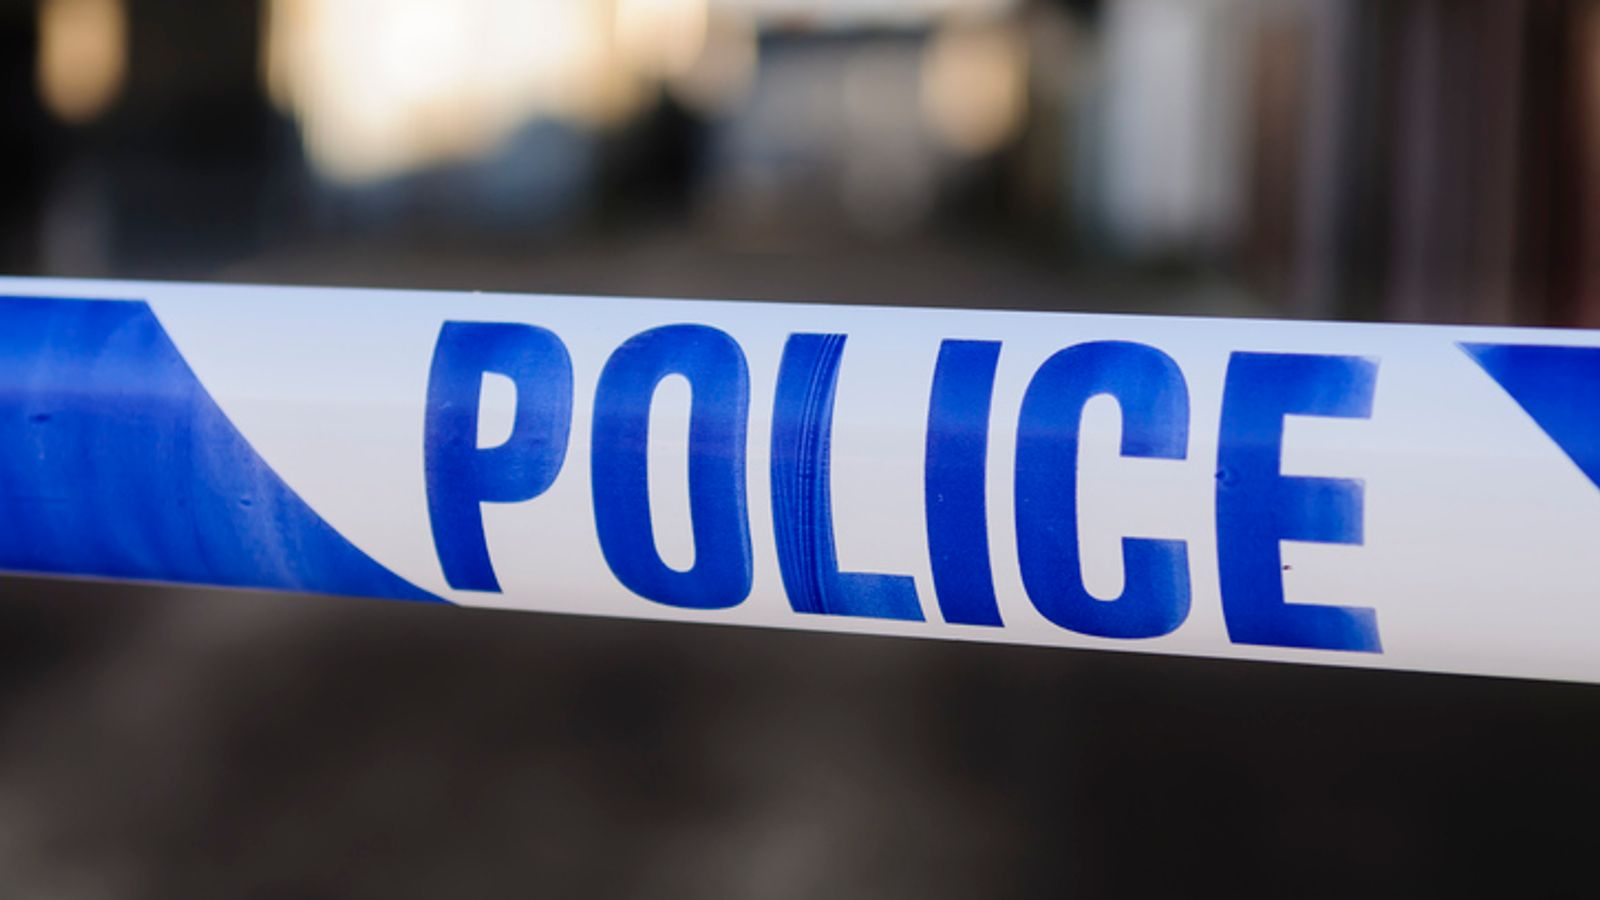 Man and woman arrested after girl, 3, dies in West Midlands thumbnail